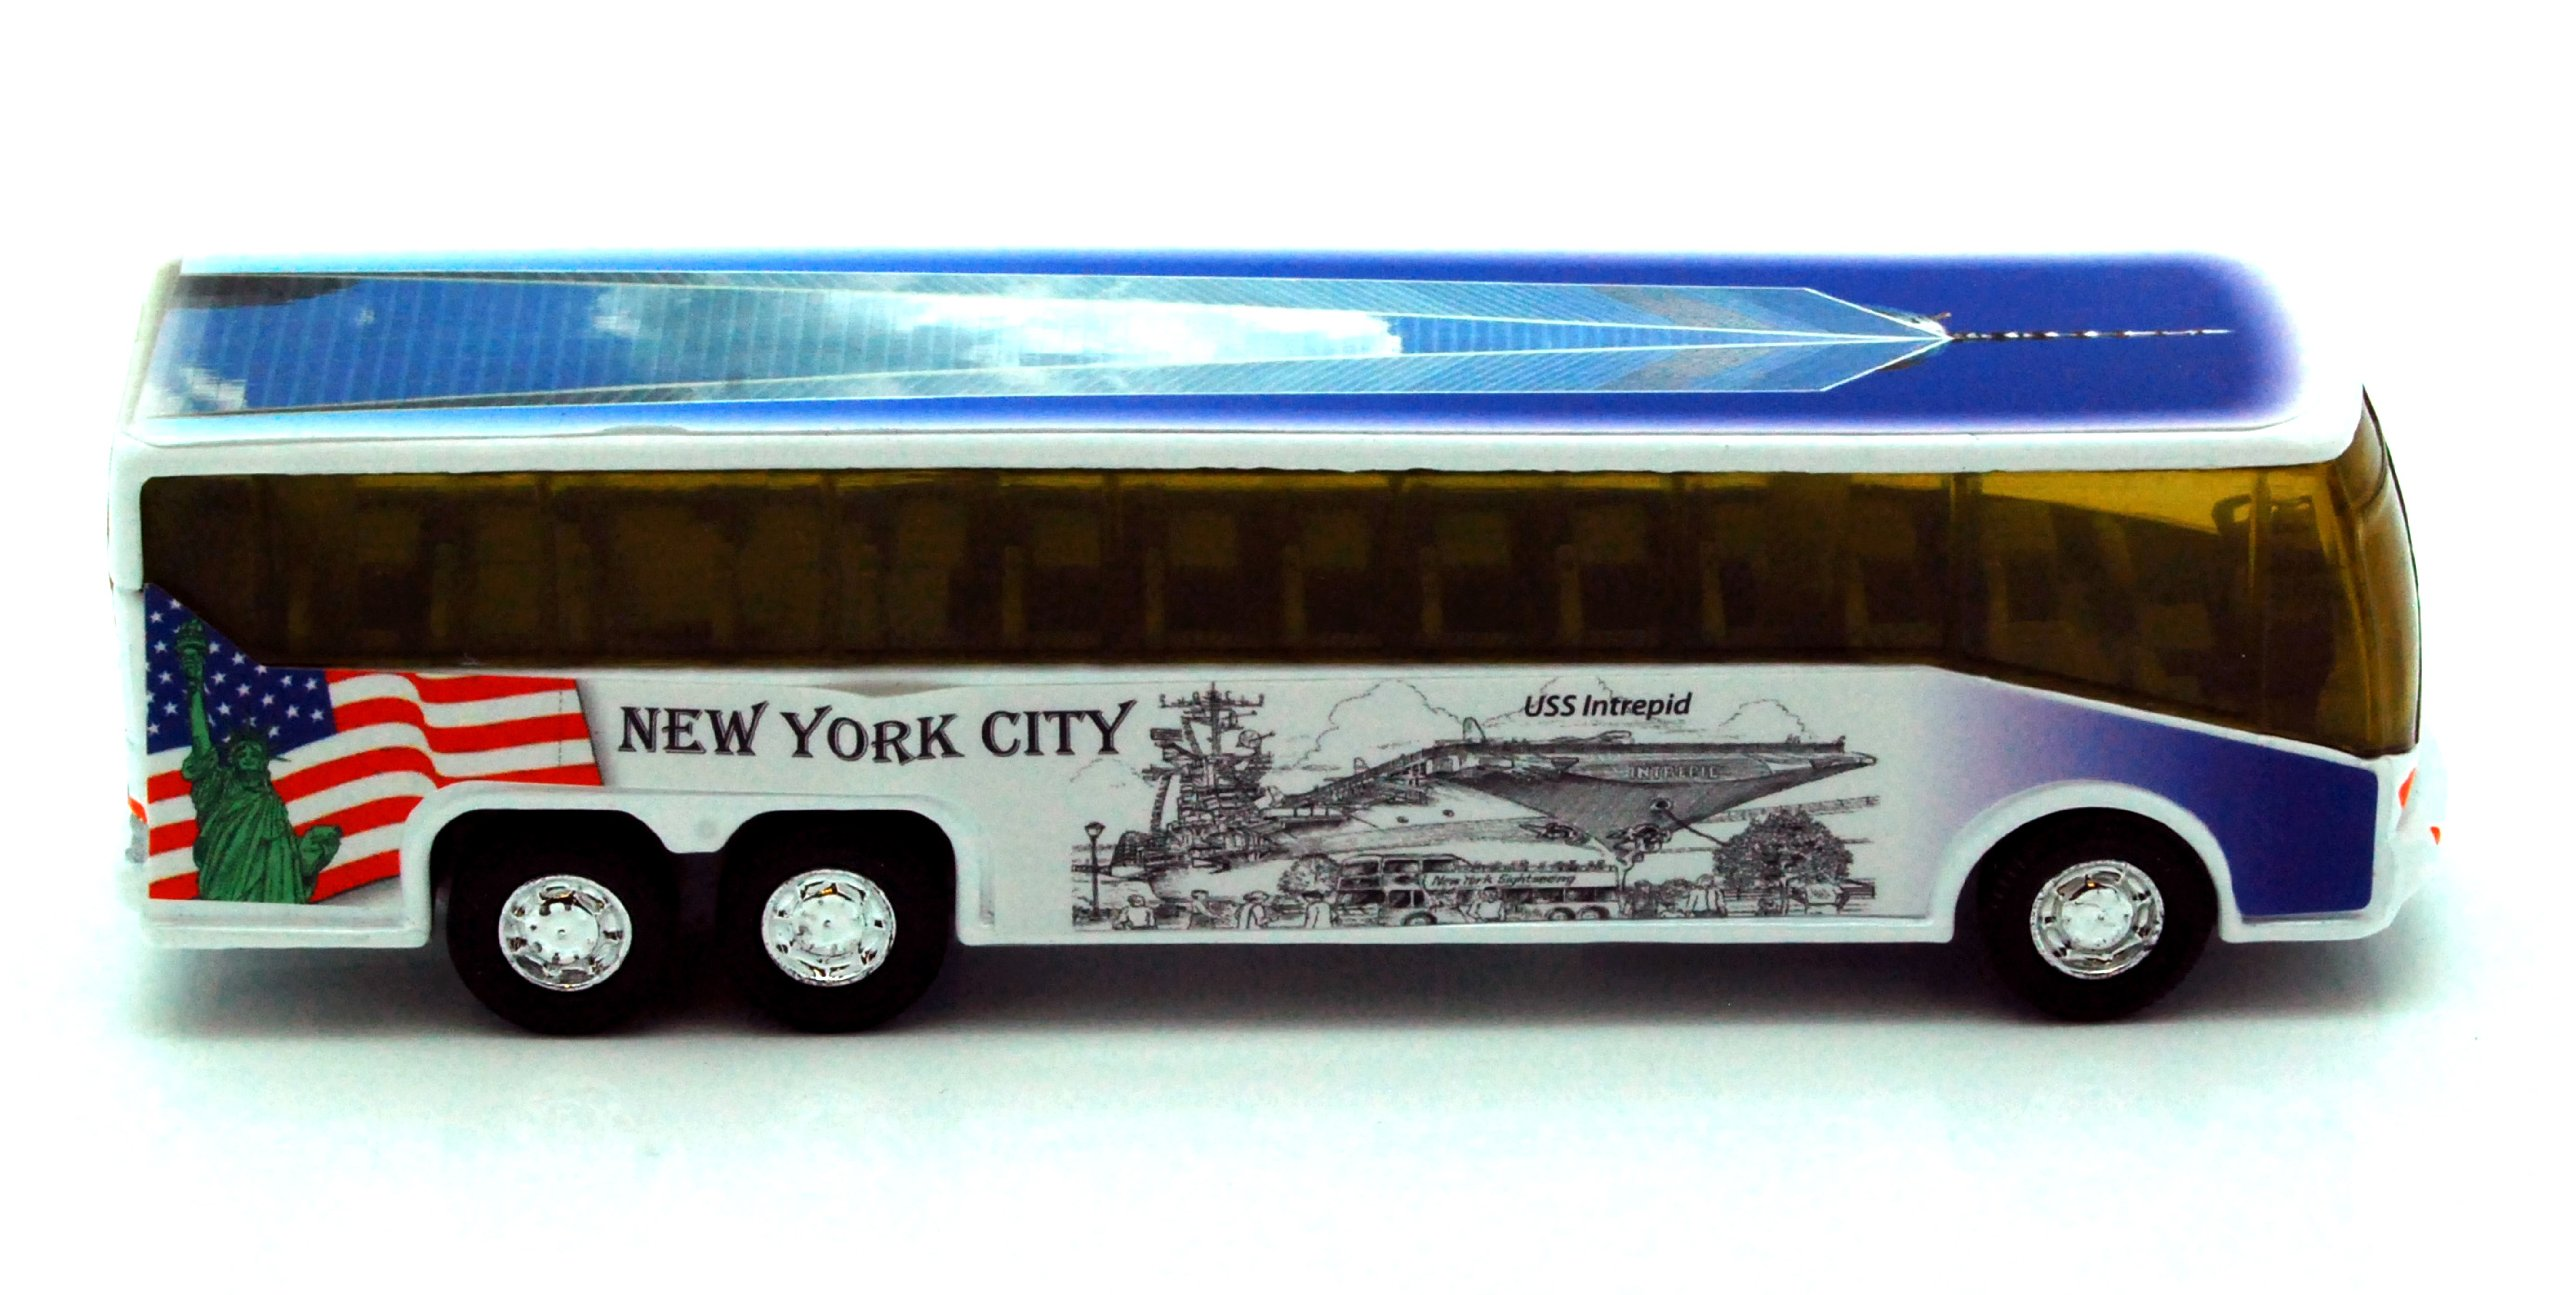 "NYC Diecast Coach Bus 6"" - Statue of Liberty, Empire State Building, Freedom Tower"